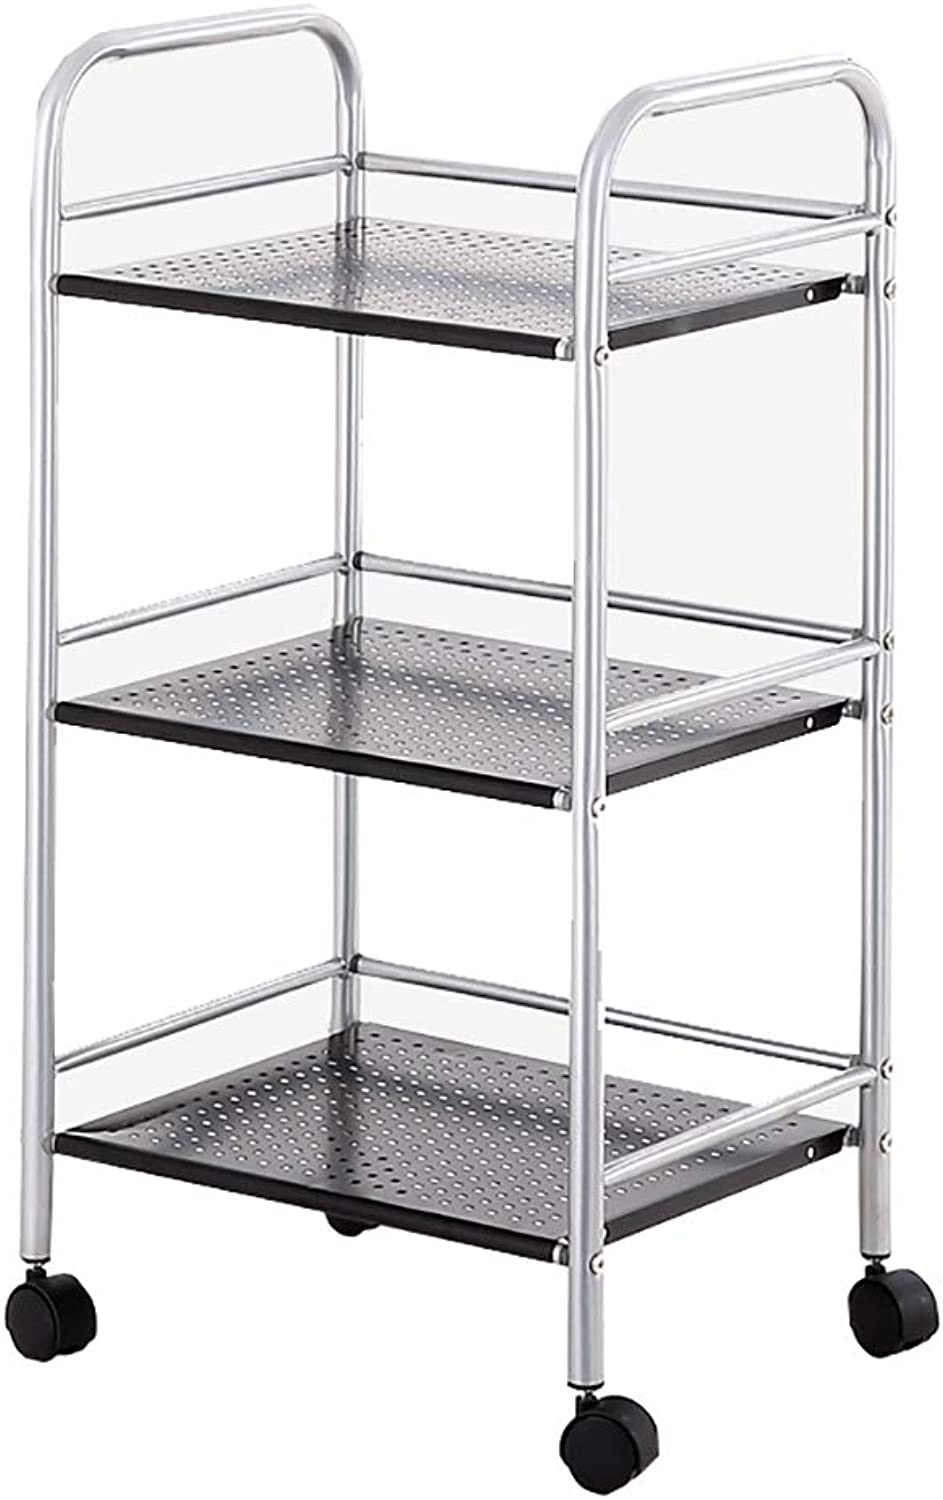 Kitchen Racks, Small Carts with Wheels for Easy Movement, Carbon Steel Rust-Proof and Waterproof No Deformation, Microwave Oven Racks Kitchen Utensils Storage Shelves